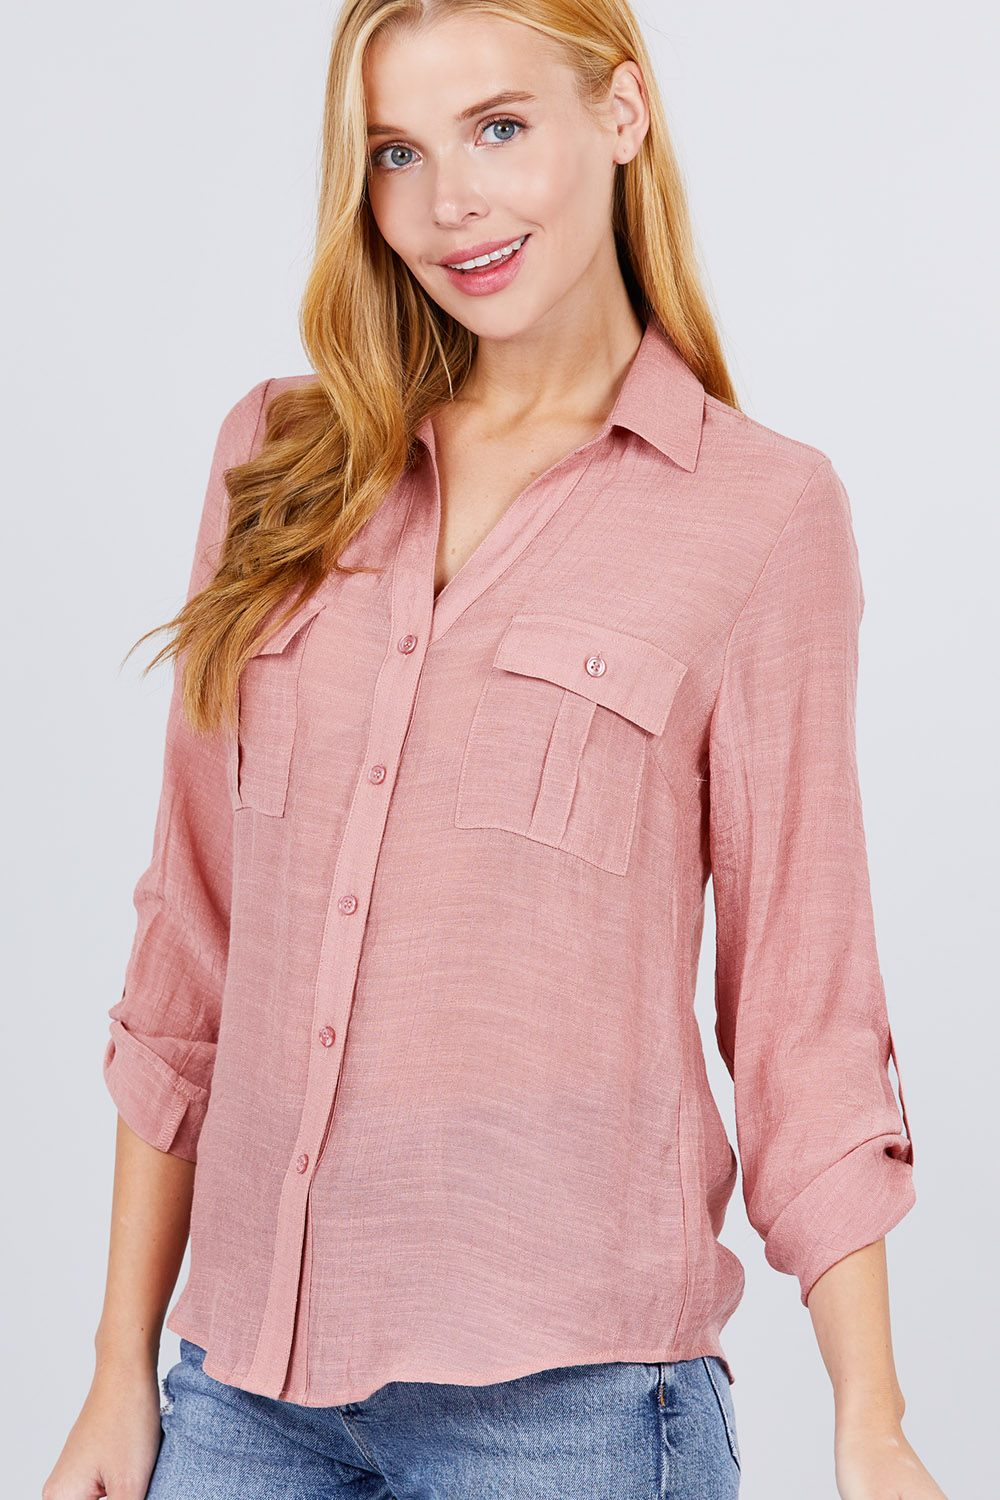 Roll 'Em Up Woven Shirt In Pink